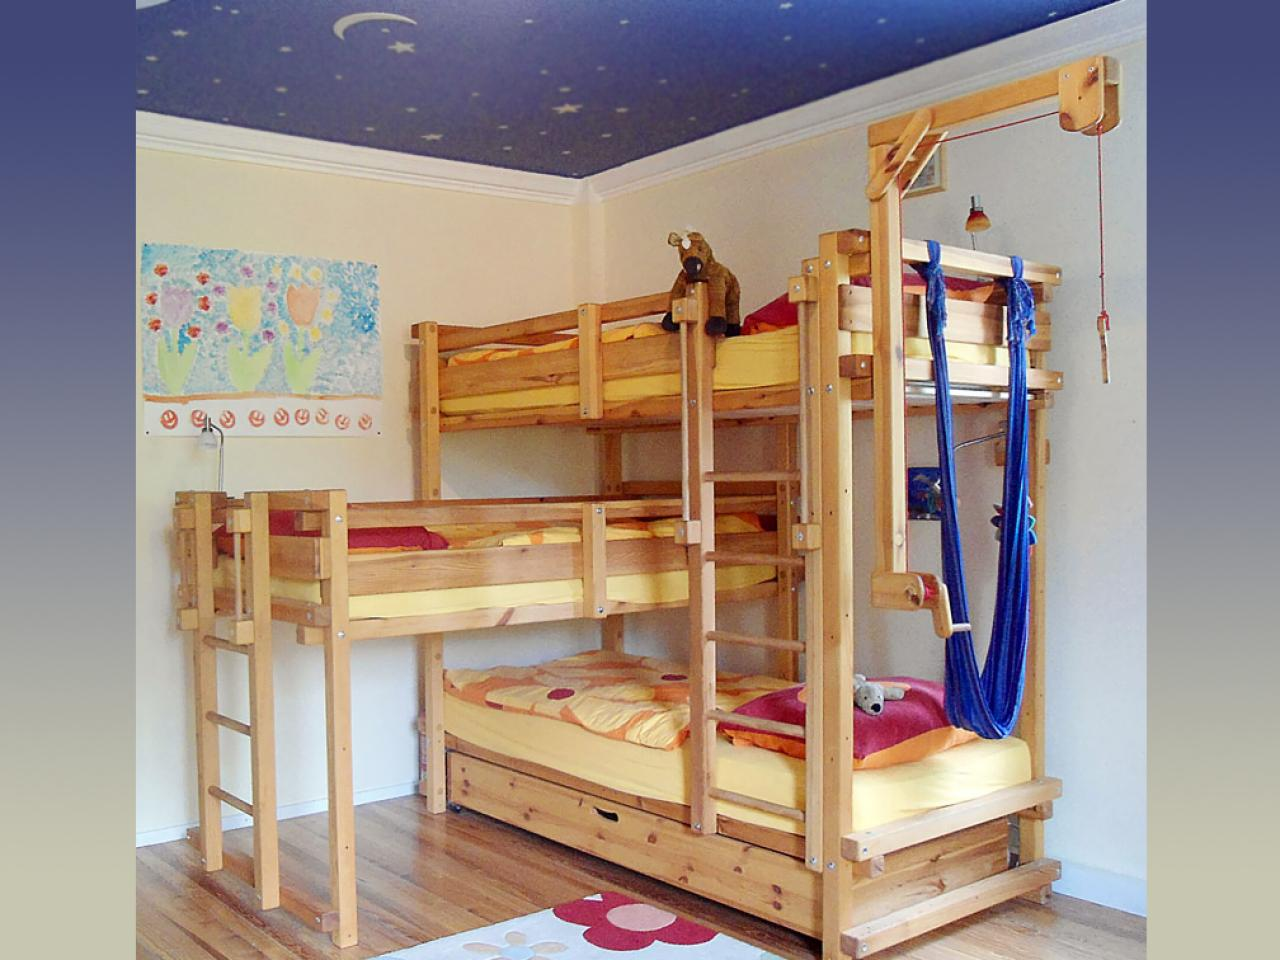 Bunk Bed Bedroom Ideas 5 Out Of The Box Ideas For 3 Bed Bunk Bed Home And